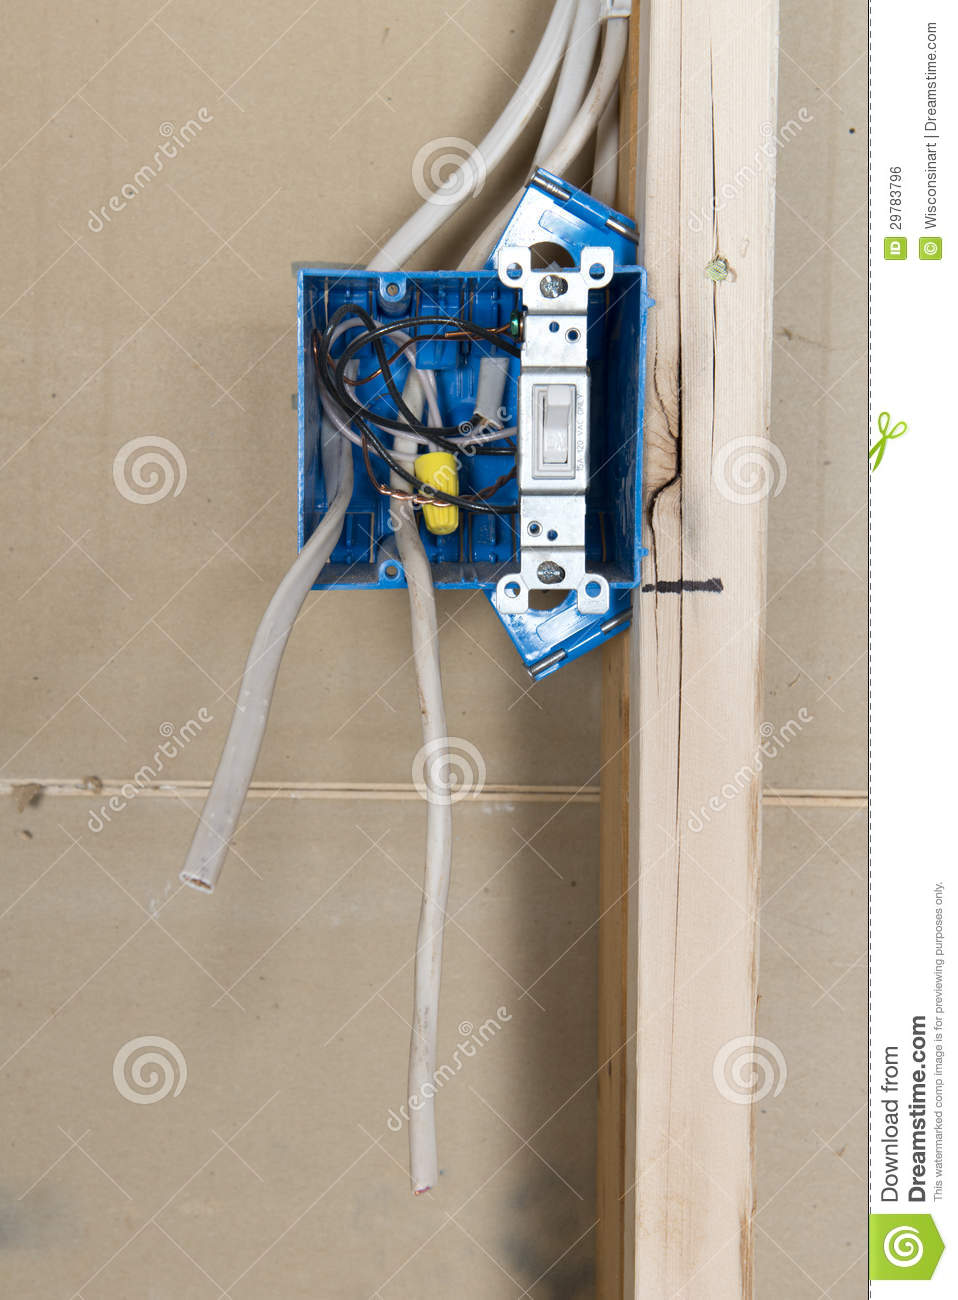 Electrical Home Wiring Outlet Box Stock Photo Image Of Improvement A New